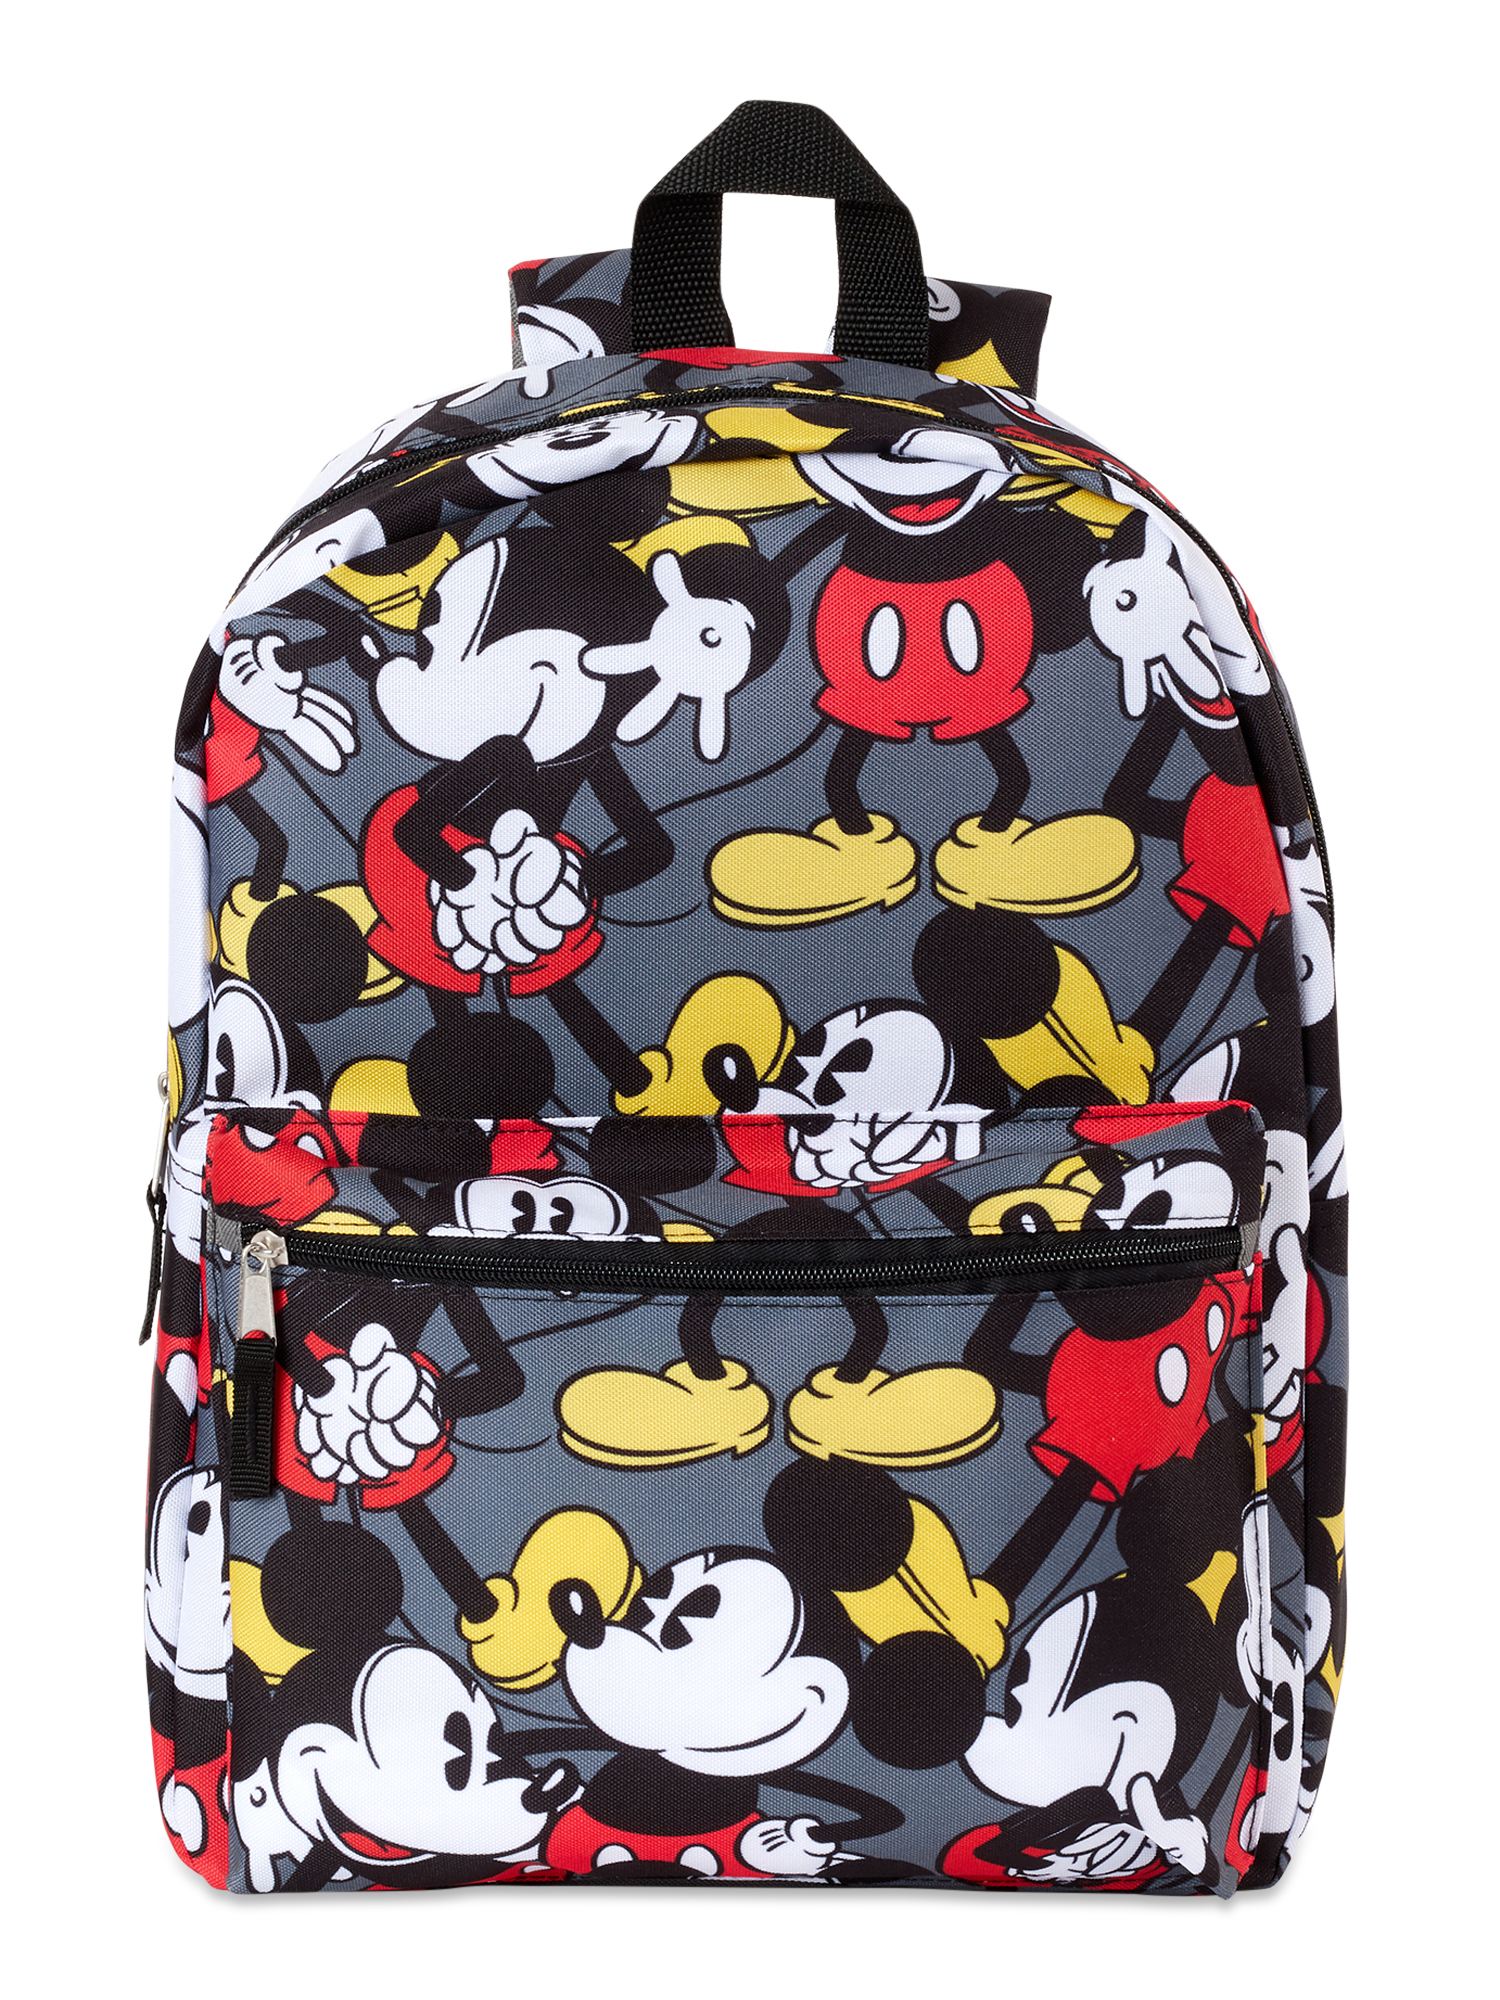 Walmart Mickey Mouse Backpack $22.50